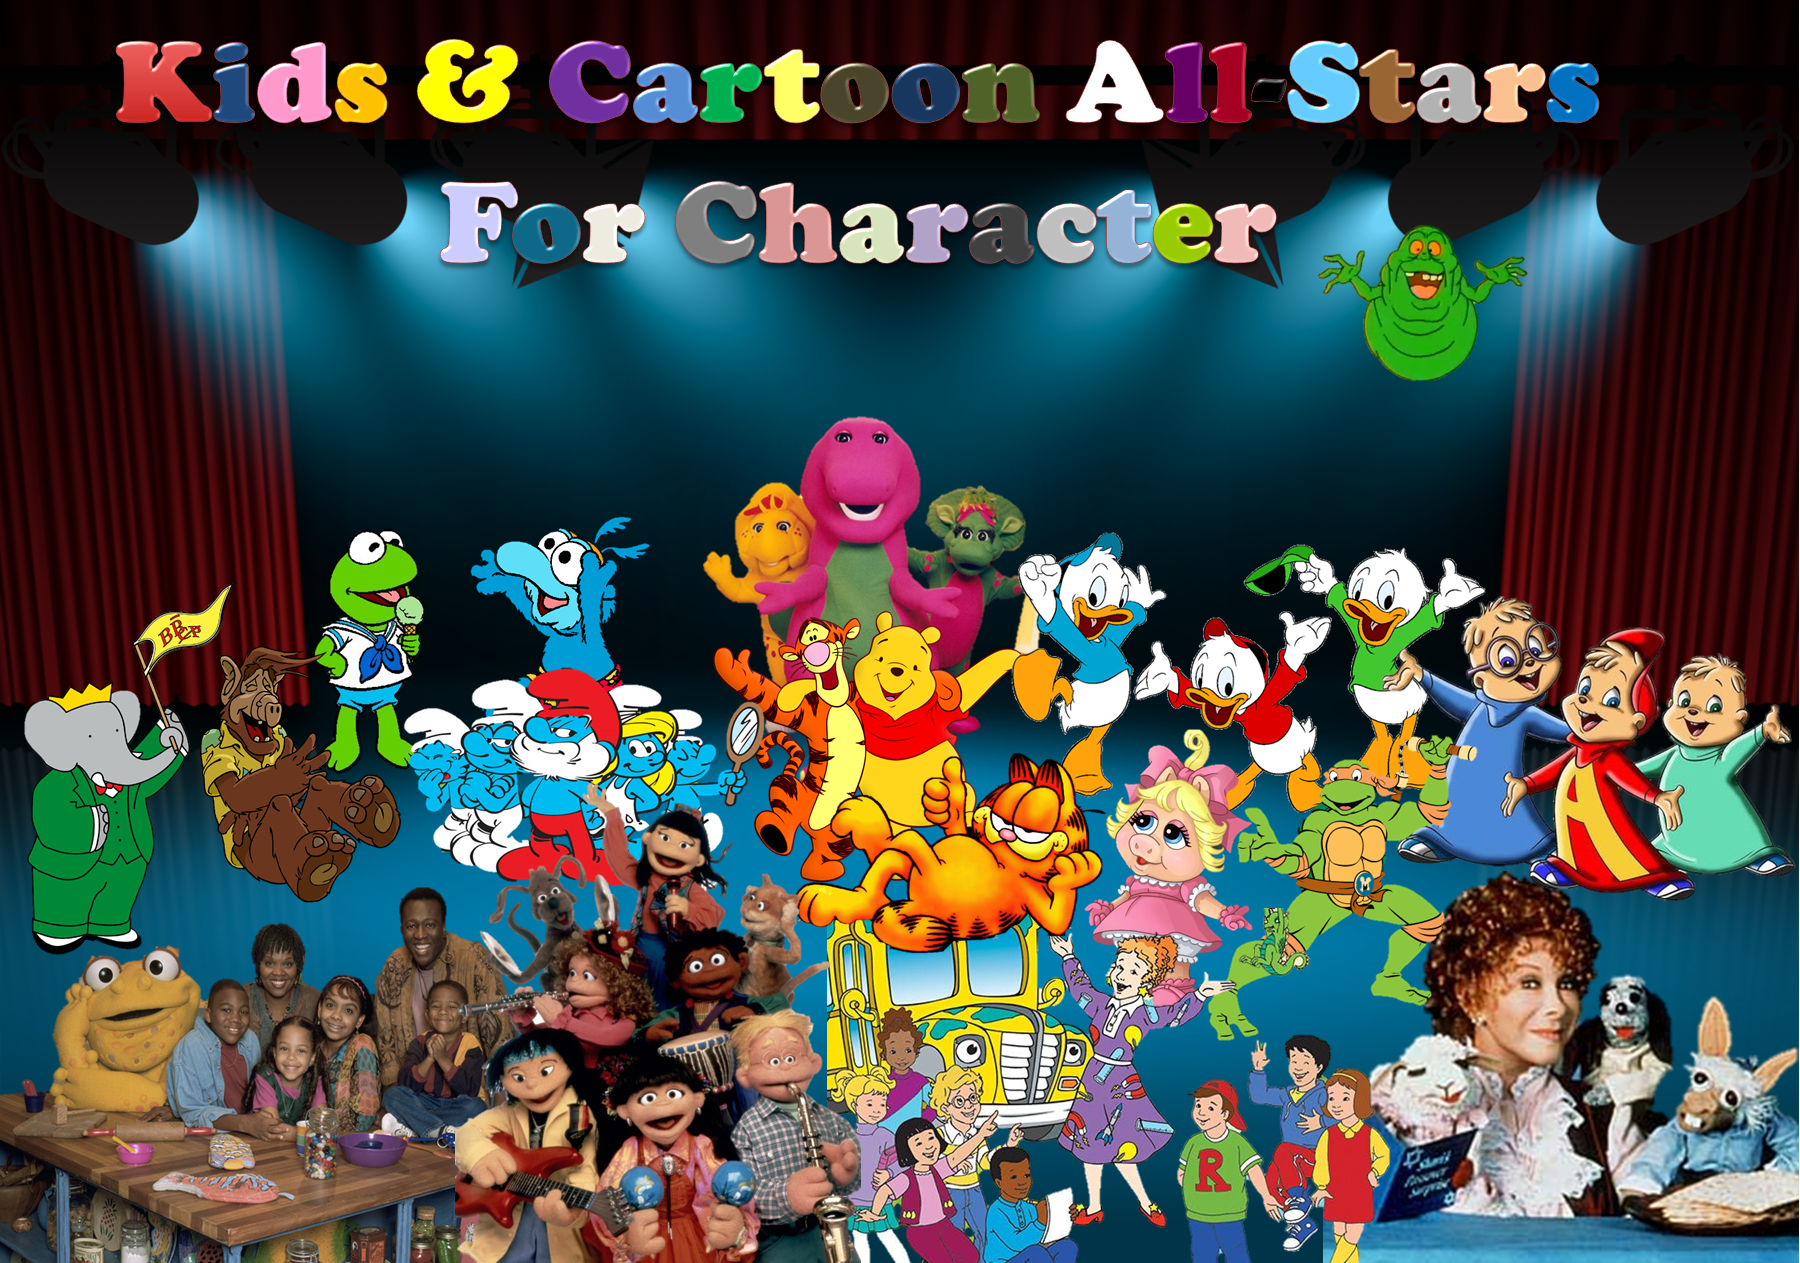 Kids & Cartoon All-Stars For Character Double Feature | The